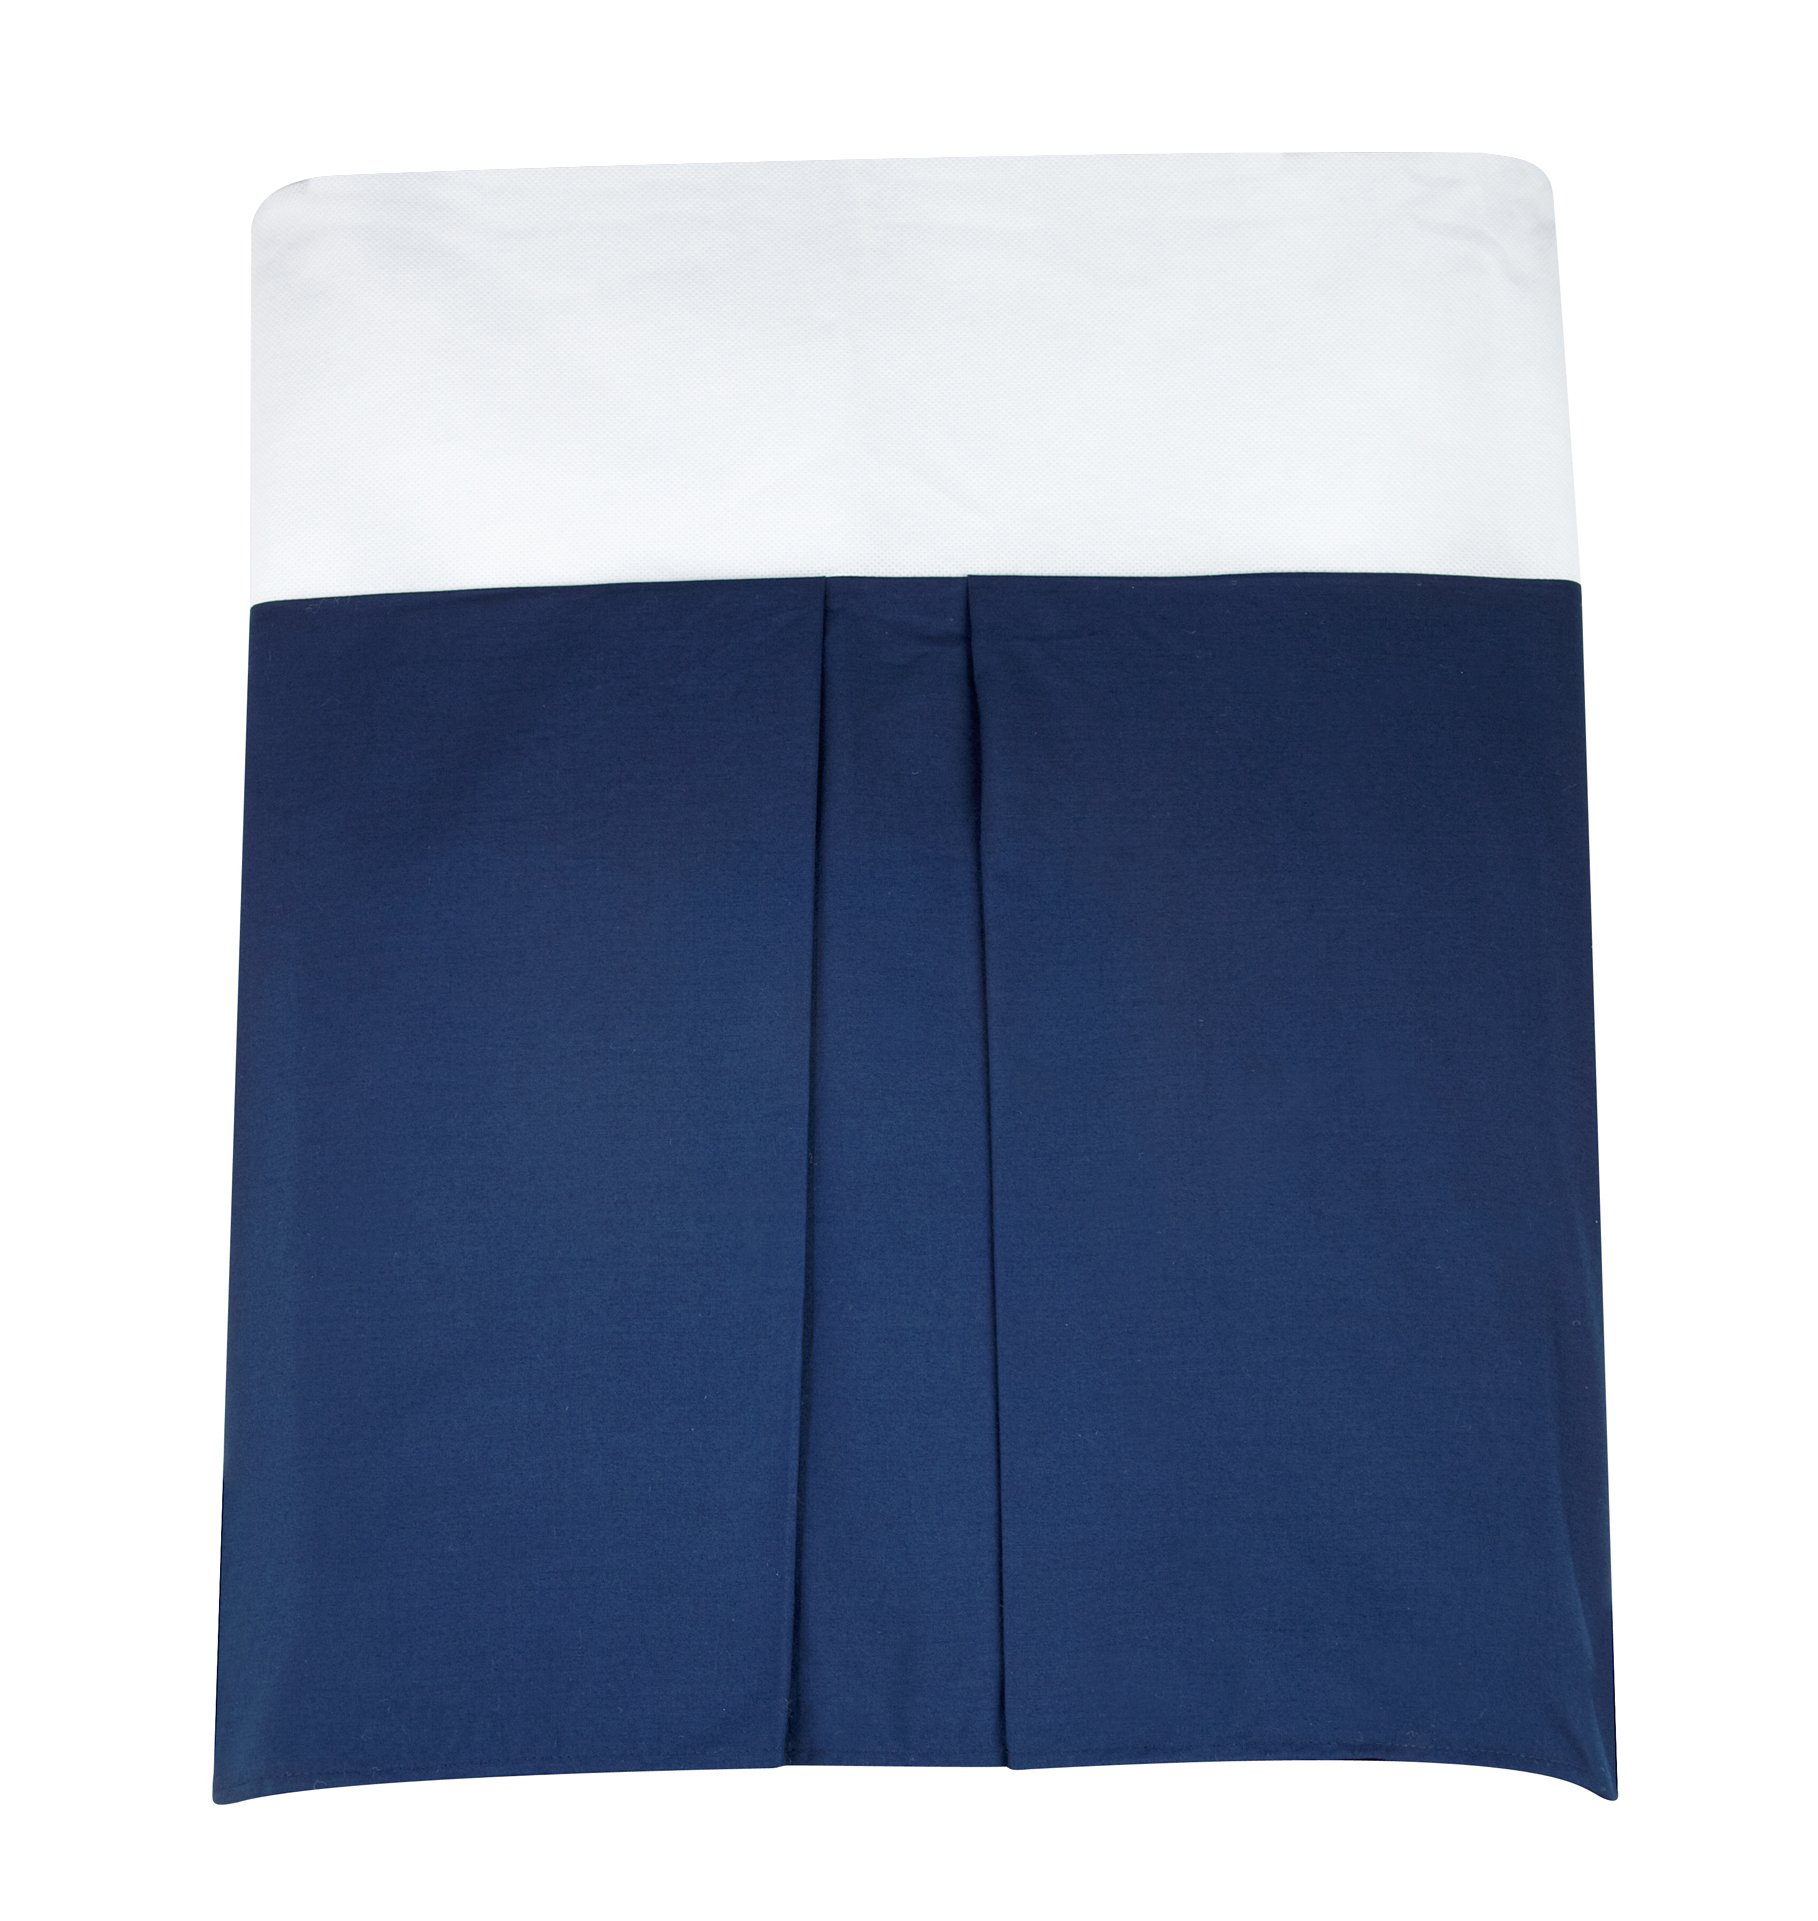 Nautica Kids Nursery Separates Dust Ruffle with Box Pleats, Solid Navy